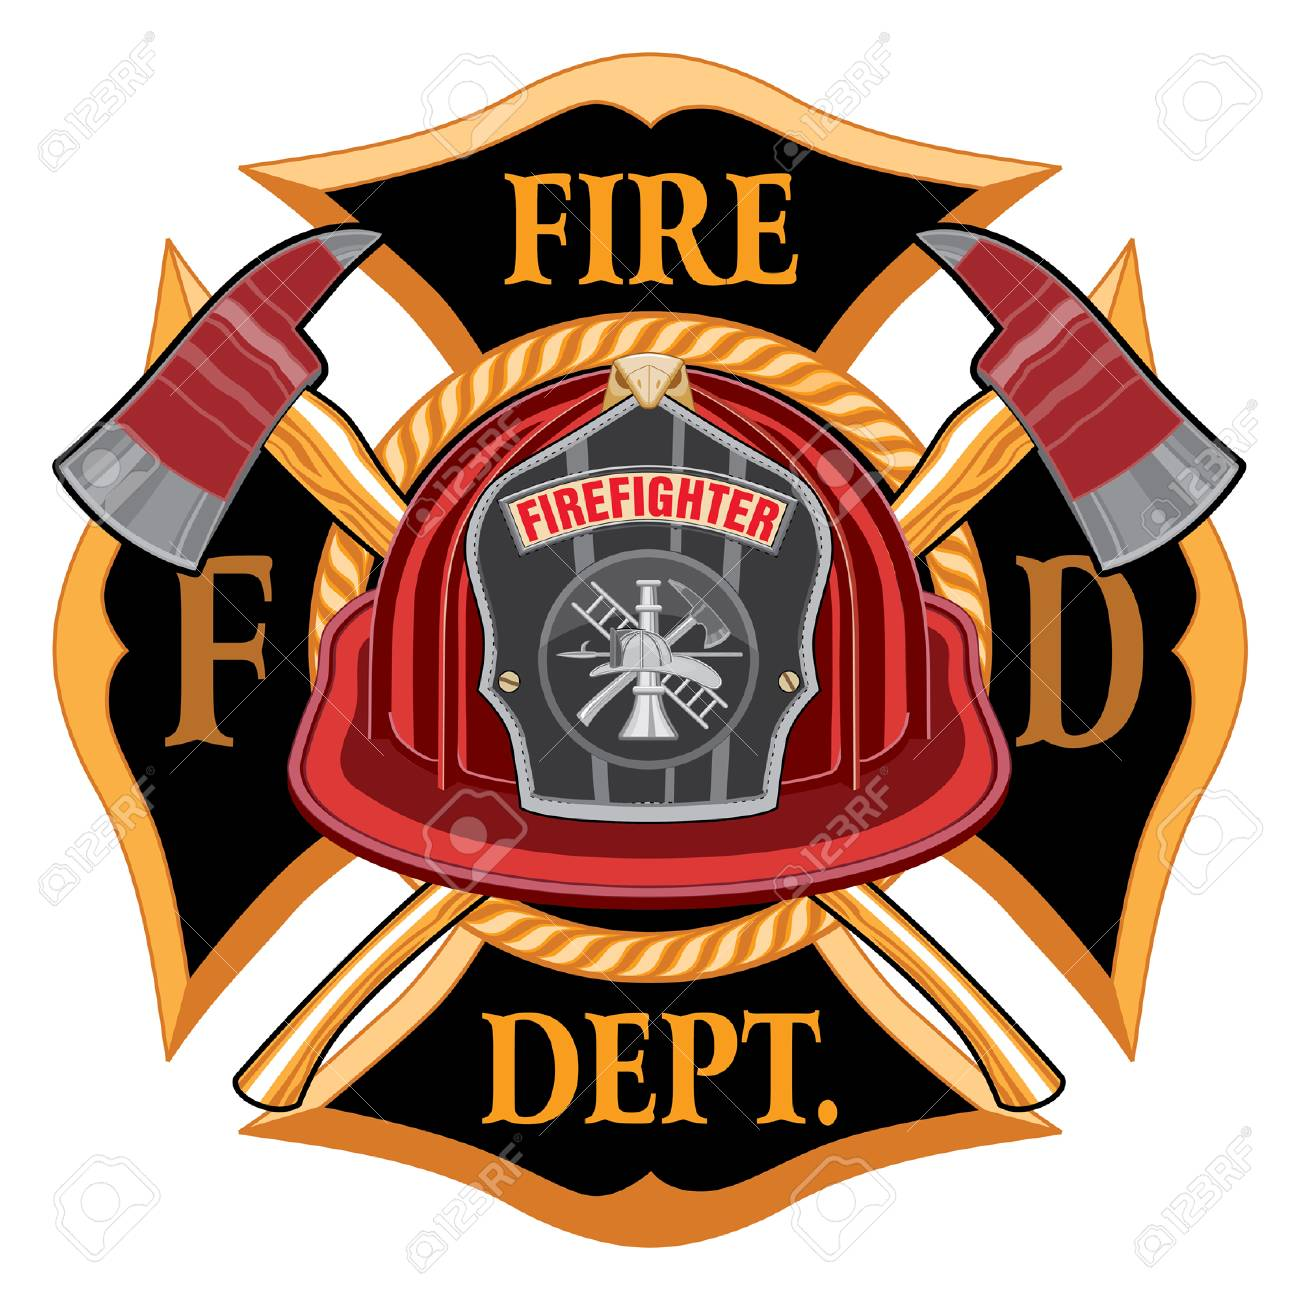 Fire Department Cross Vintage Emblem Concept Illustration..